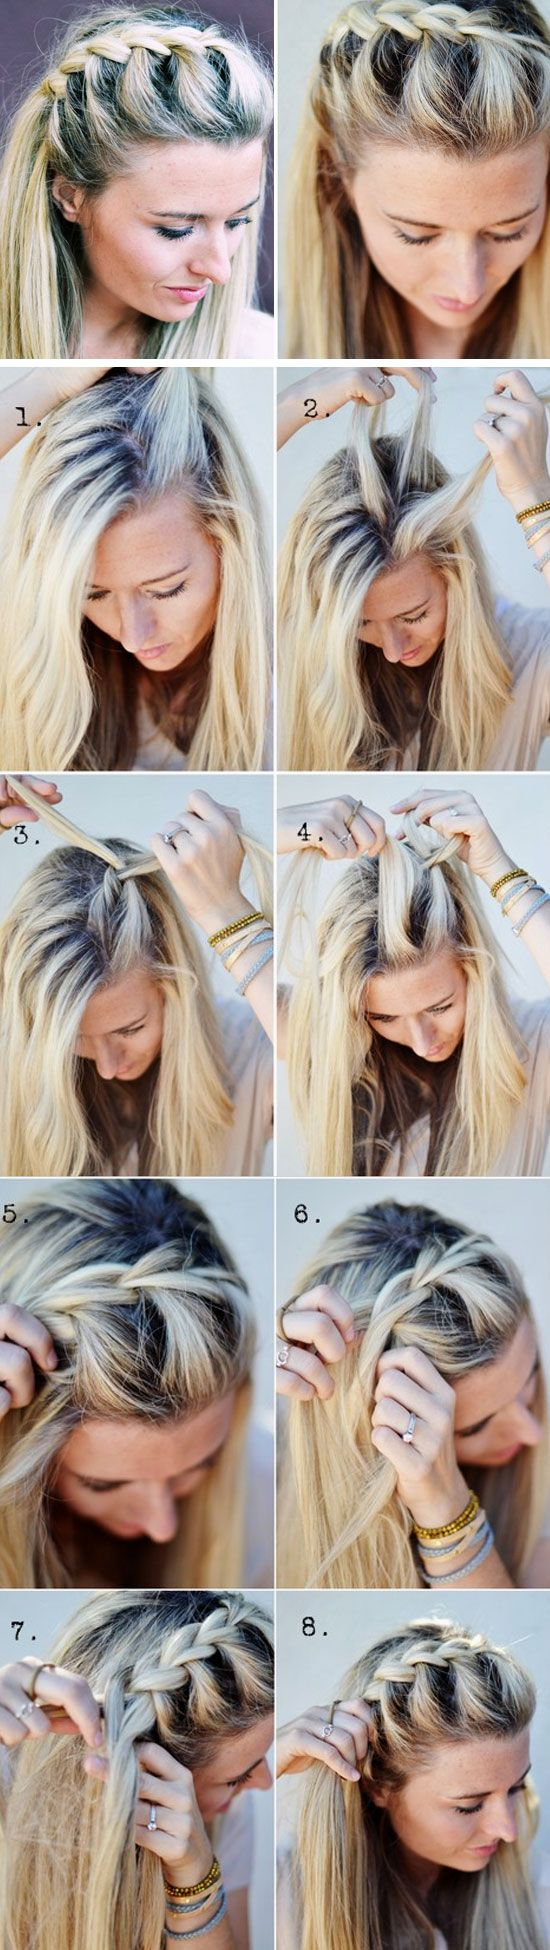 Astounding 1000 Ideas About Braids Medium Hair On Pinterest Medium Hair Up Hairstyle Inspiration Daily Dogsangcom